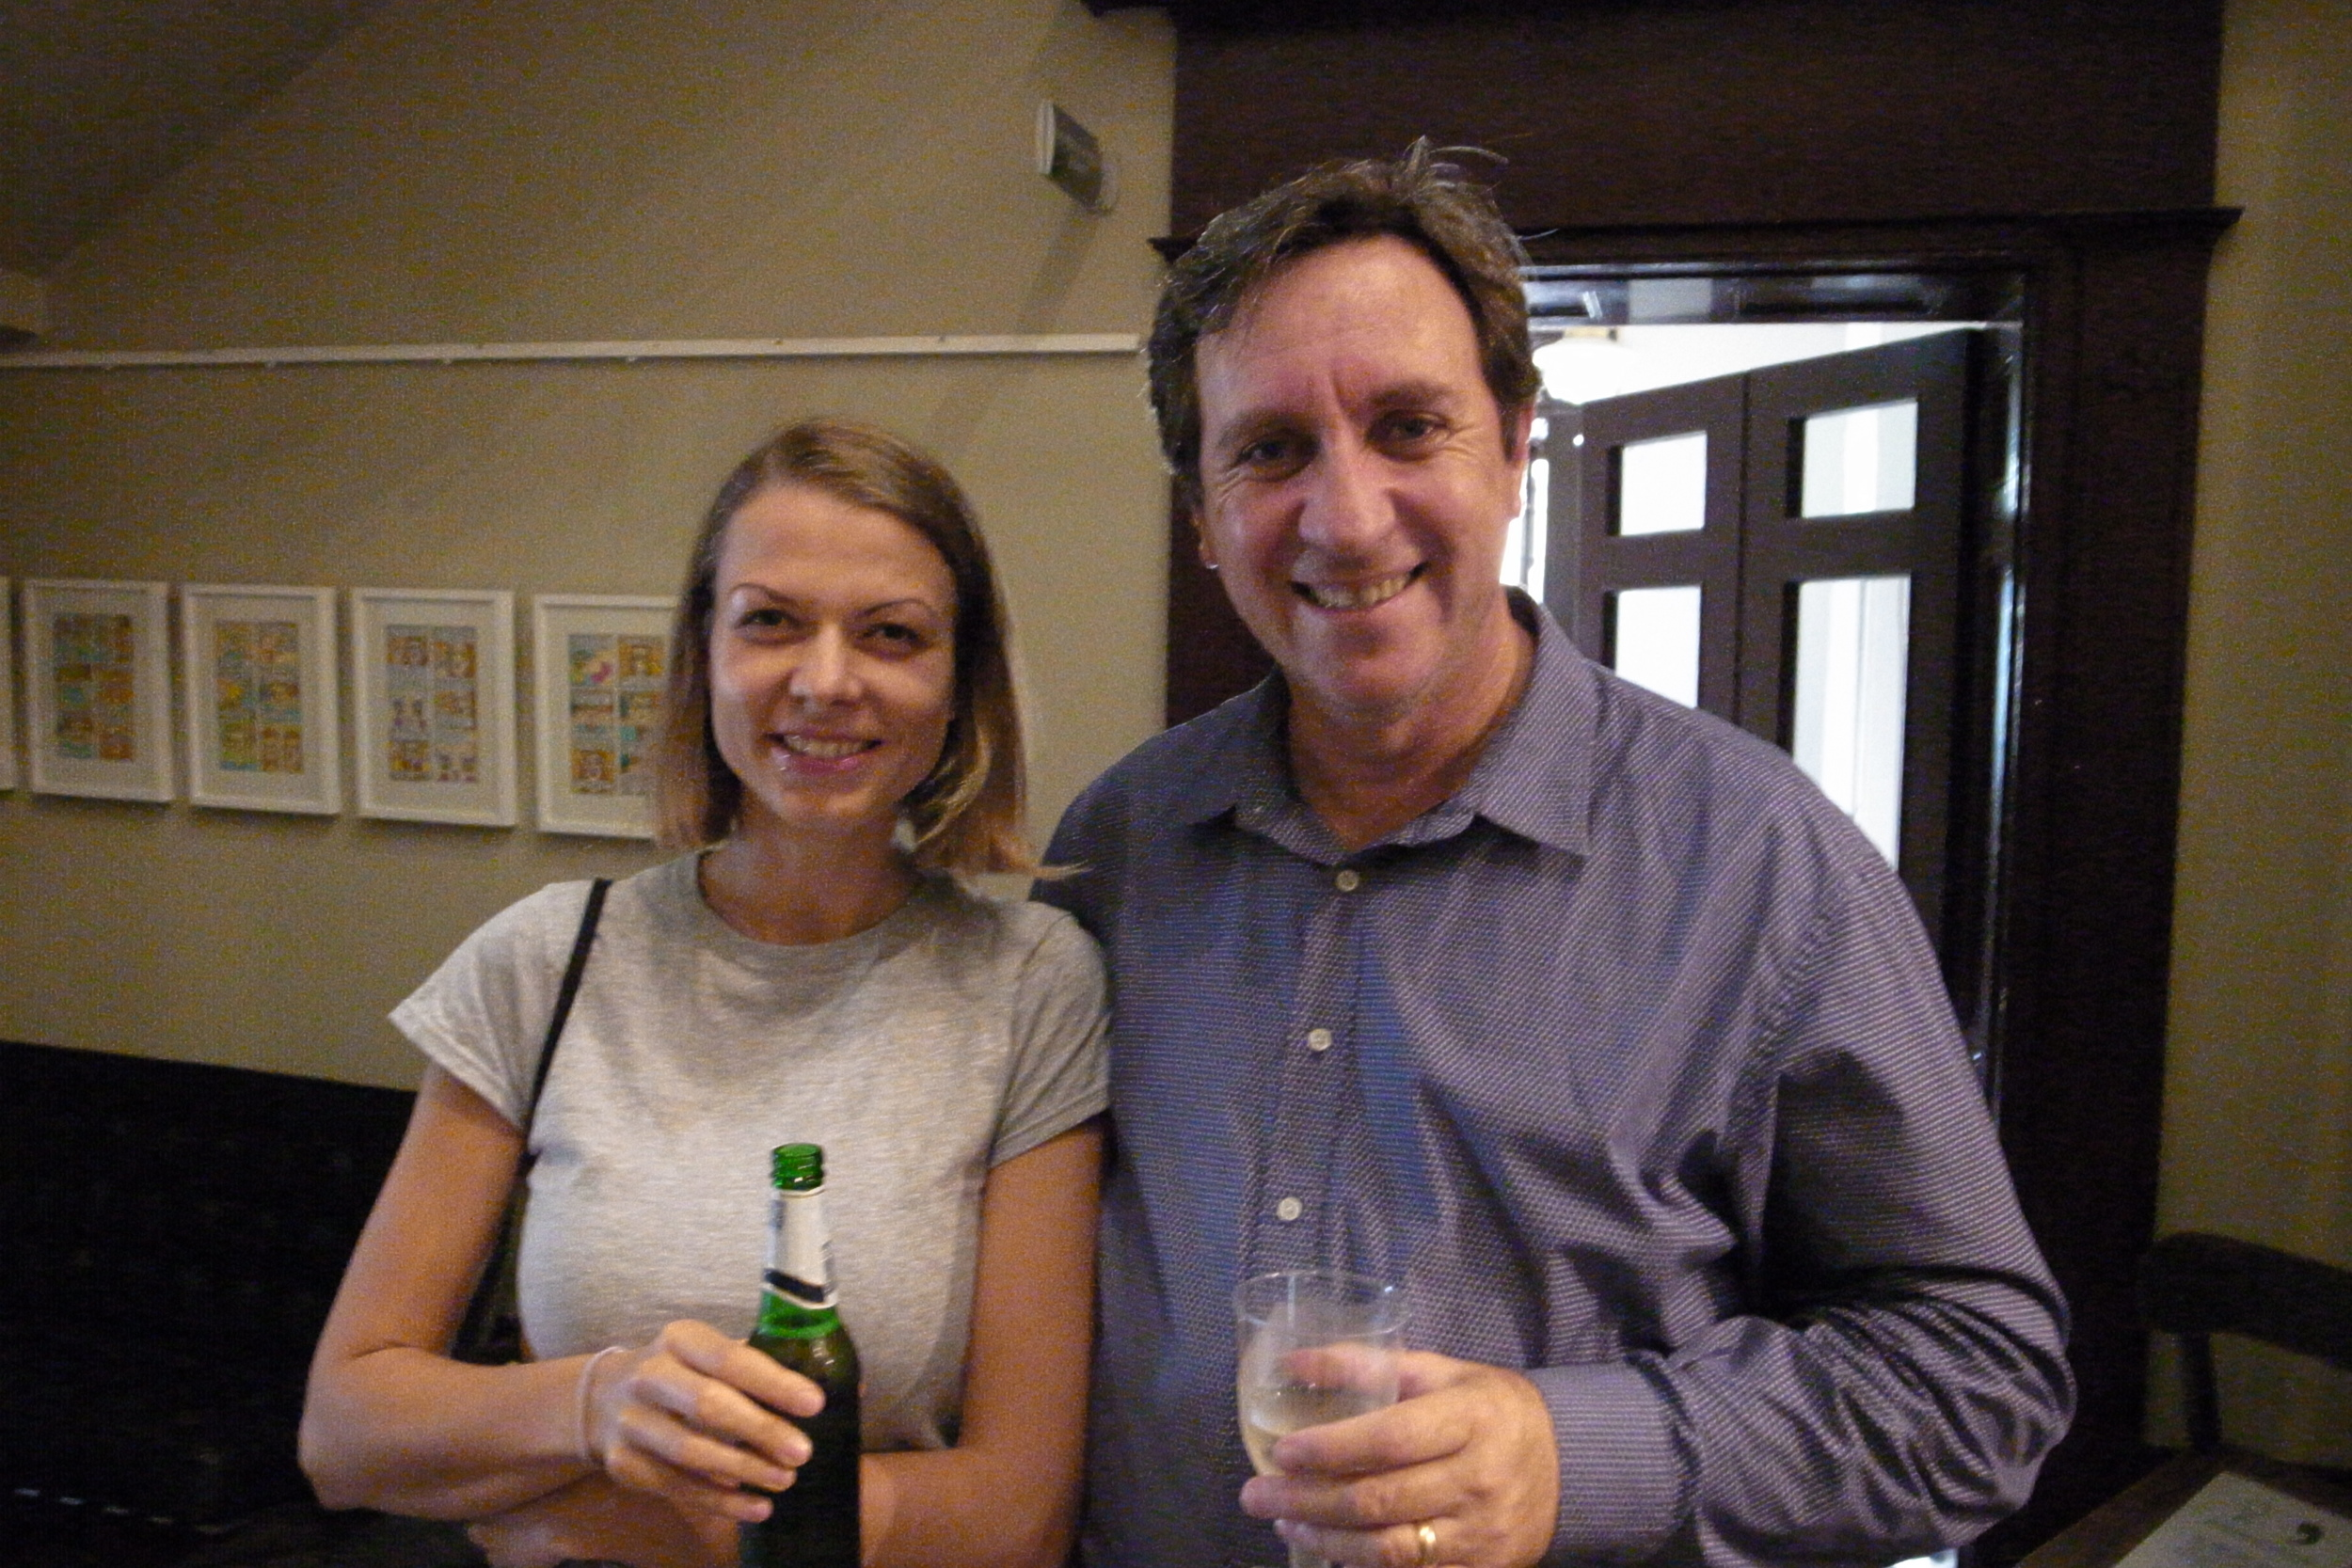 Franky Lemke and Kingston Anderson at final vote at Writers Centre 16 December 2014